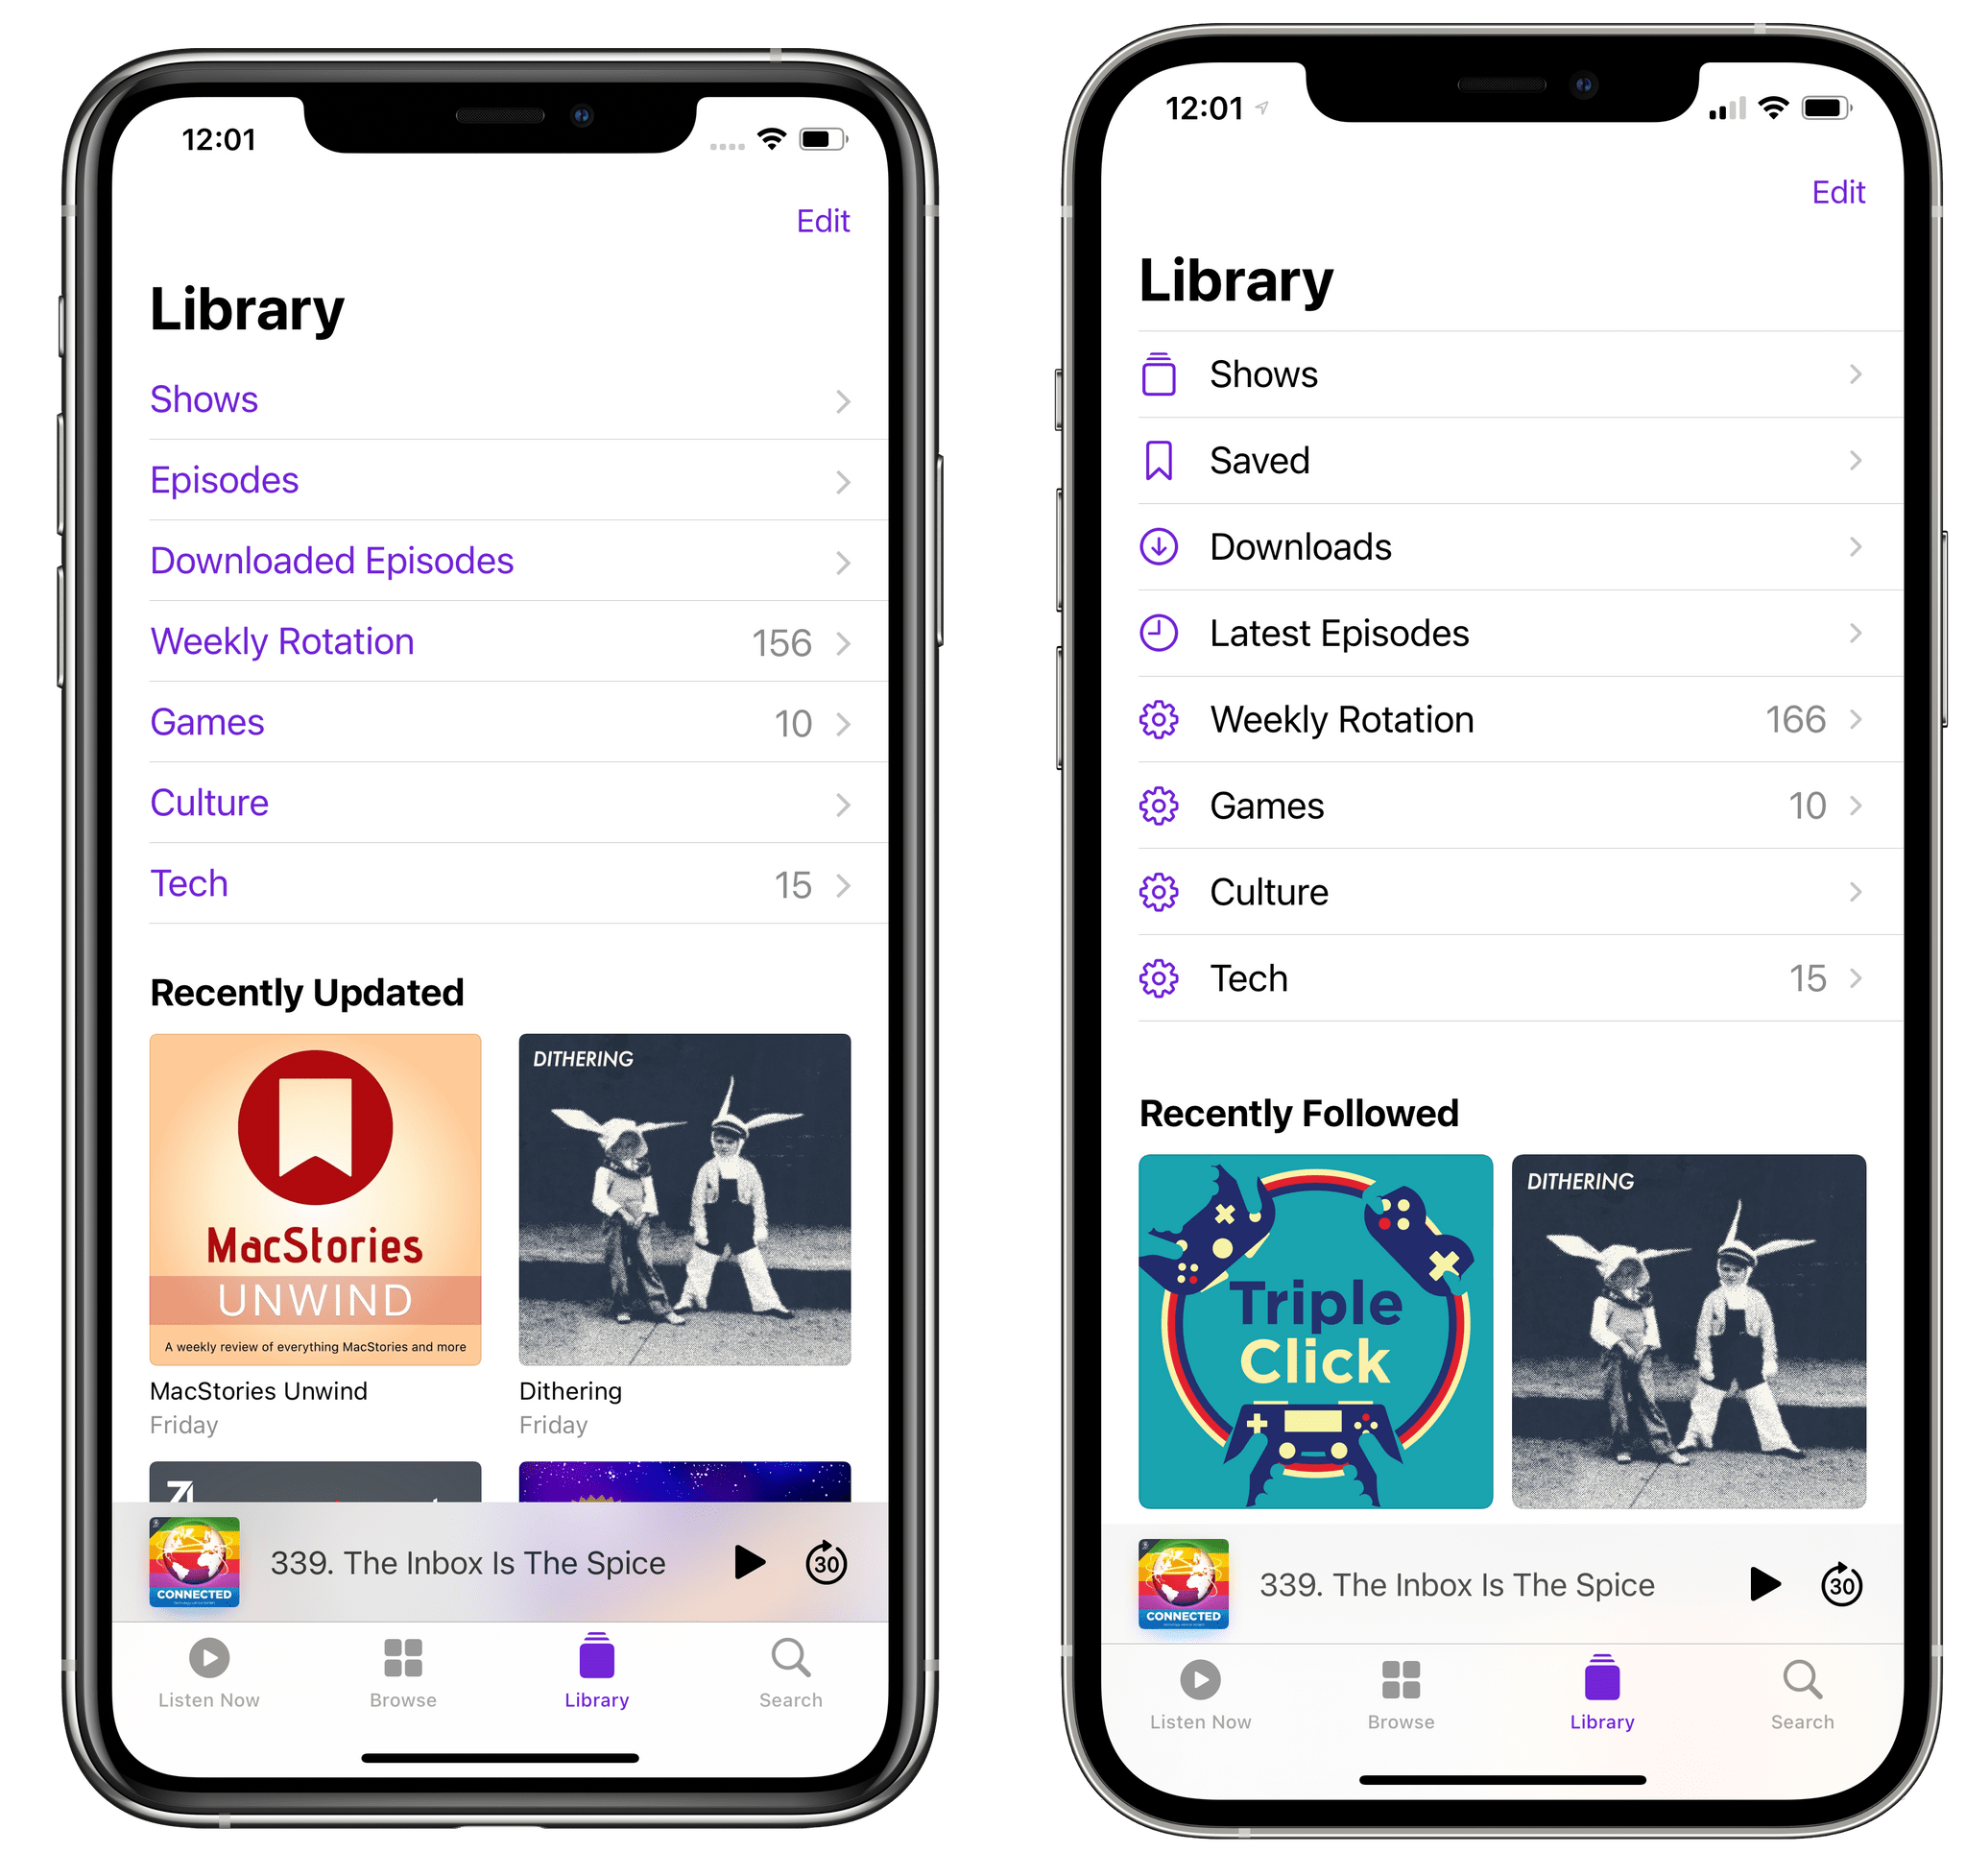 The updated Library page in Podcasts (right).